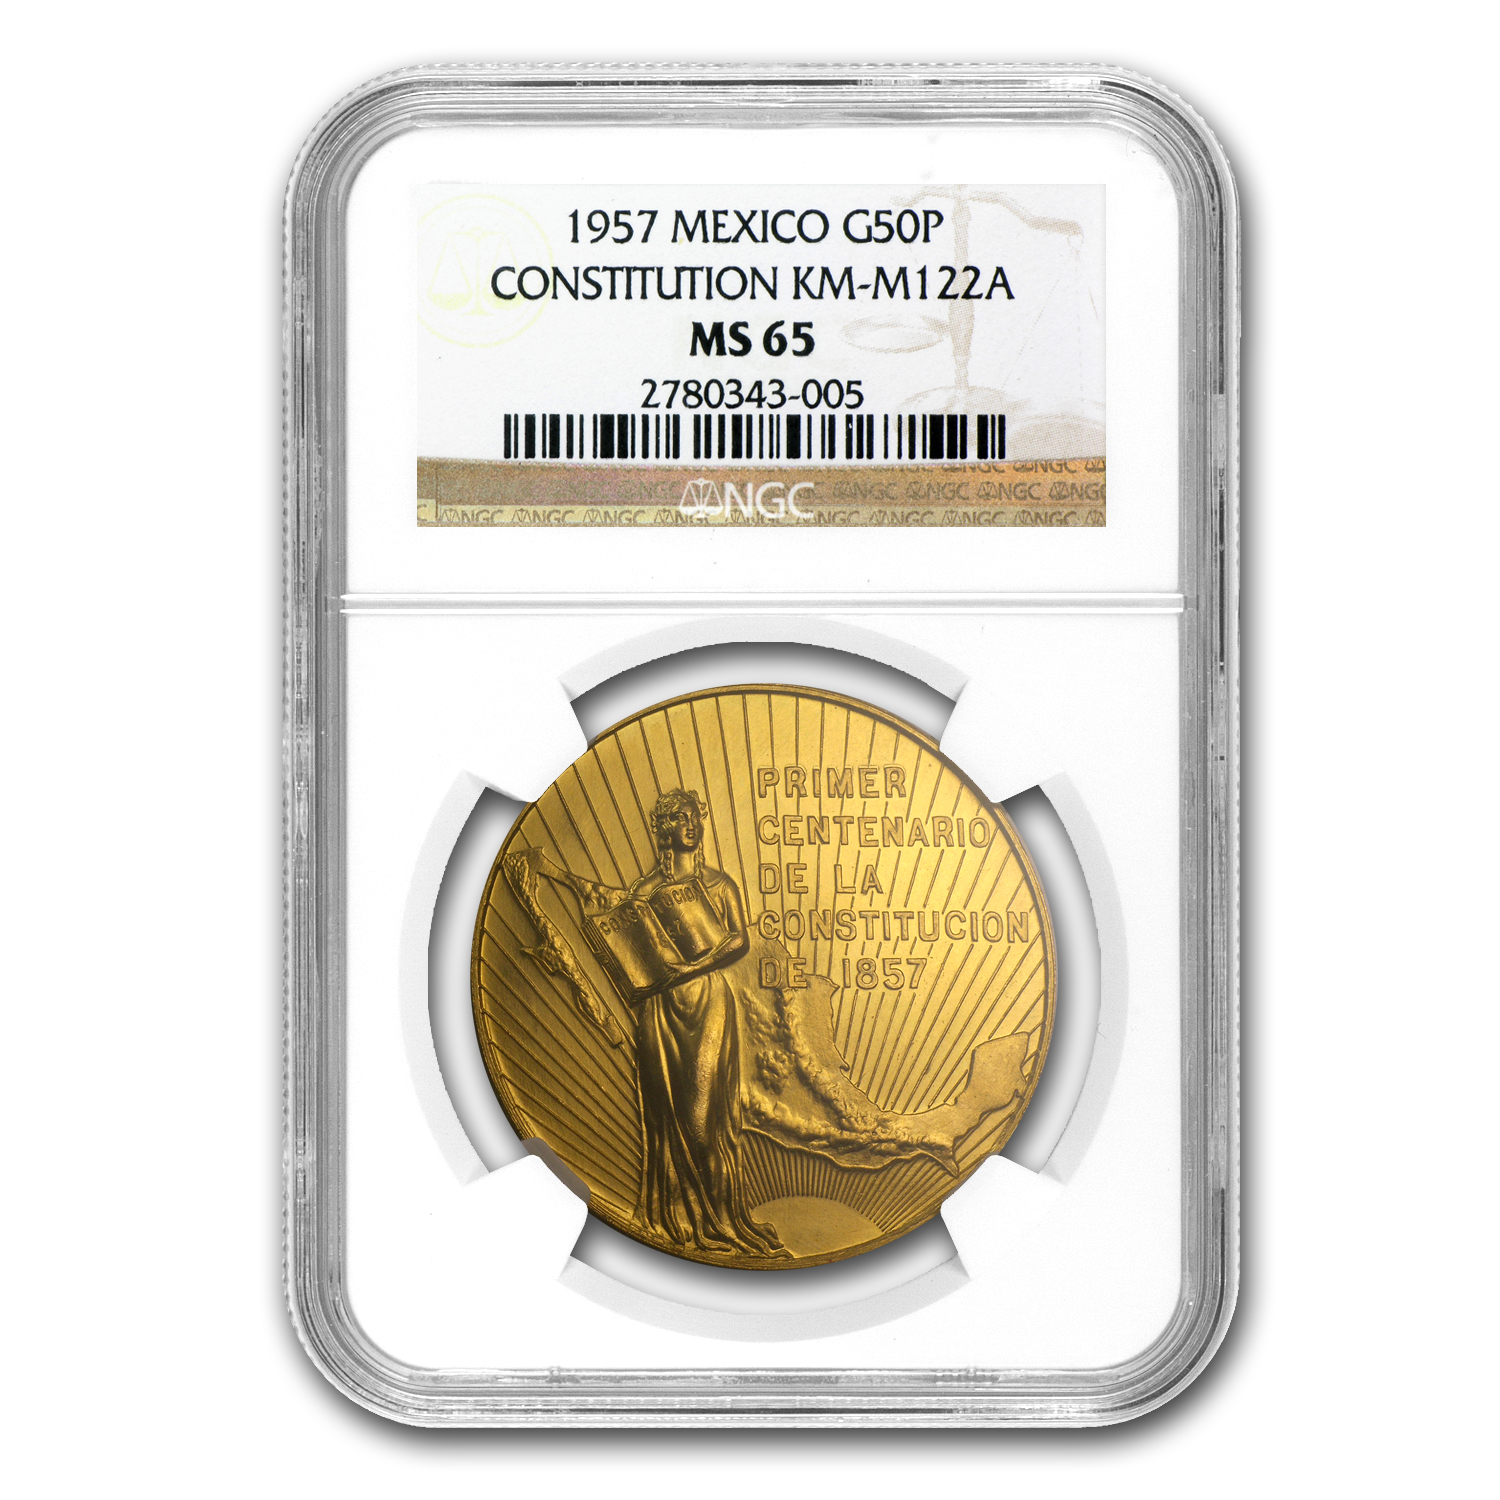 1957 Mexico Centennial of Constitution Medal MS-65 NGC